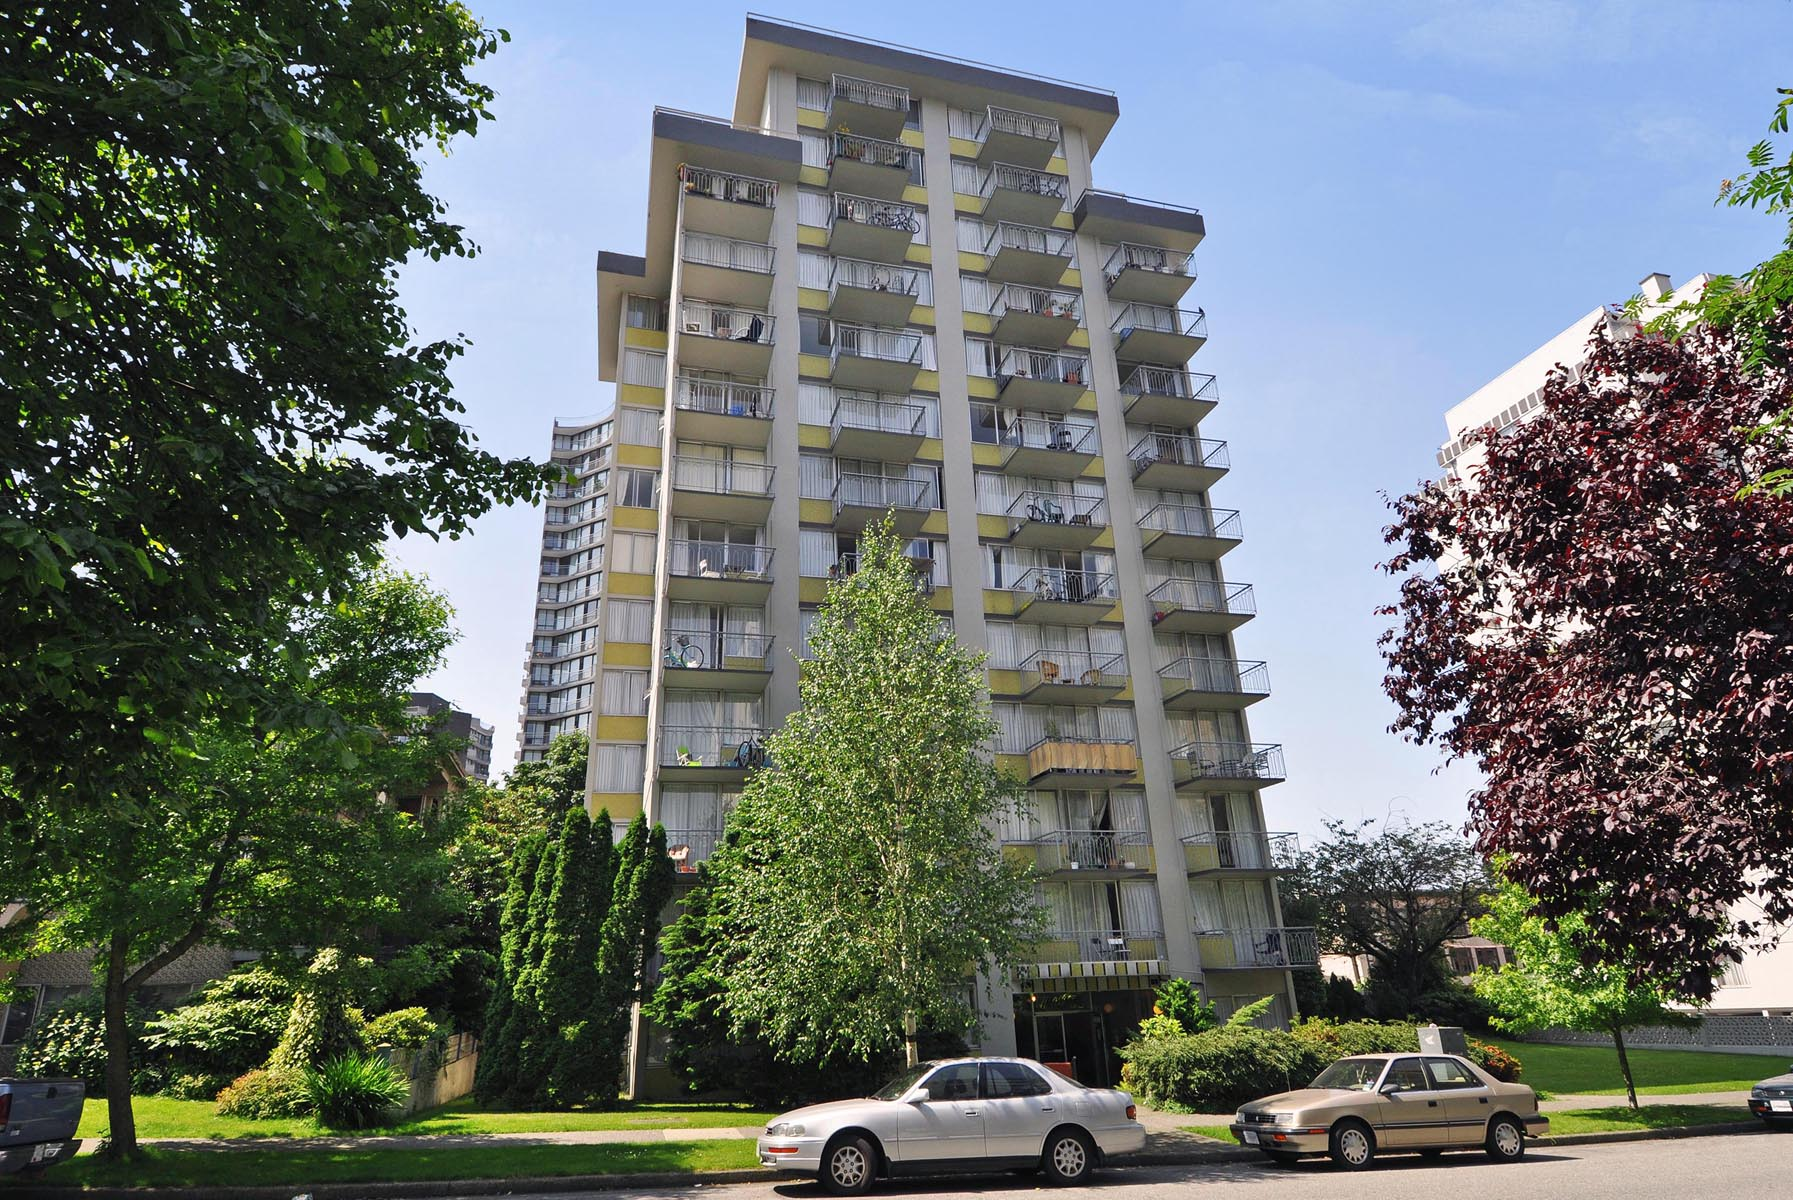 1650 Burnaby St, Vancouver, BC - $1,640